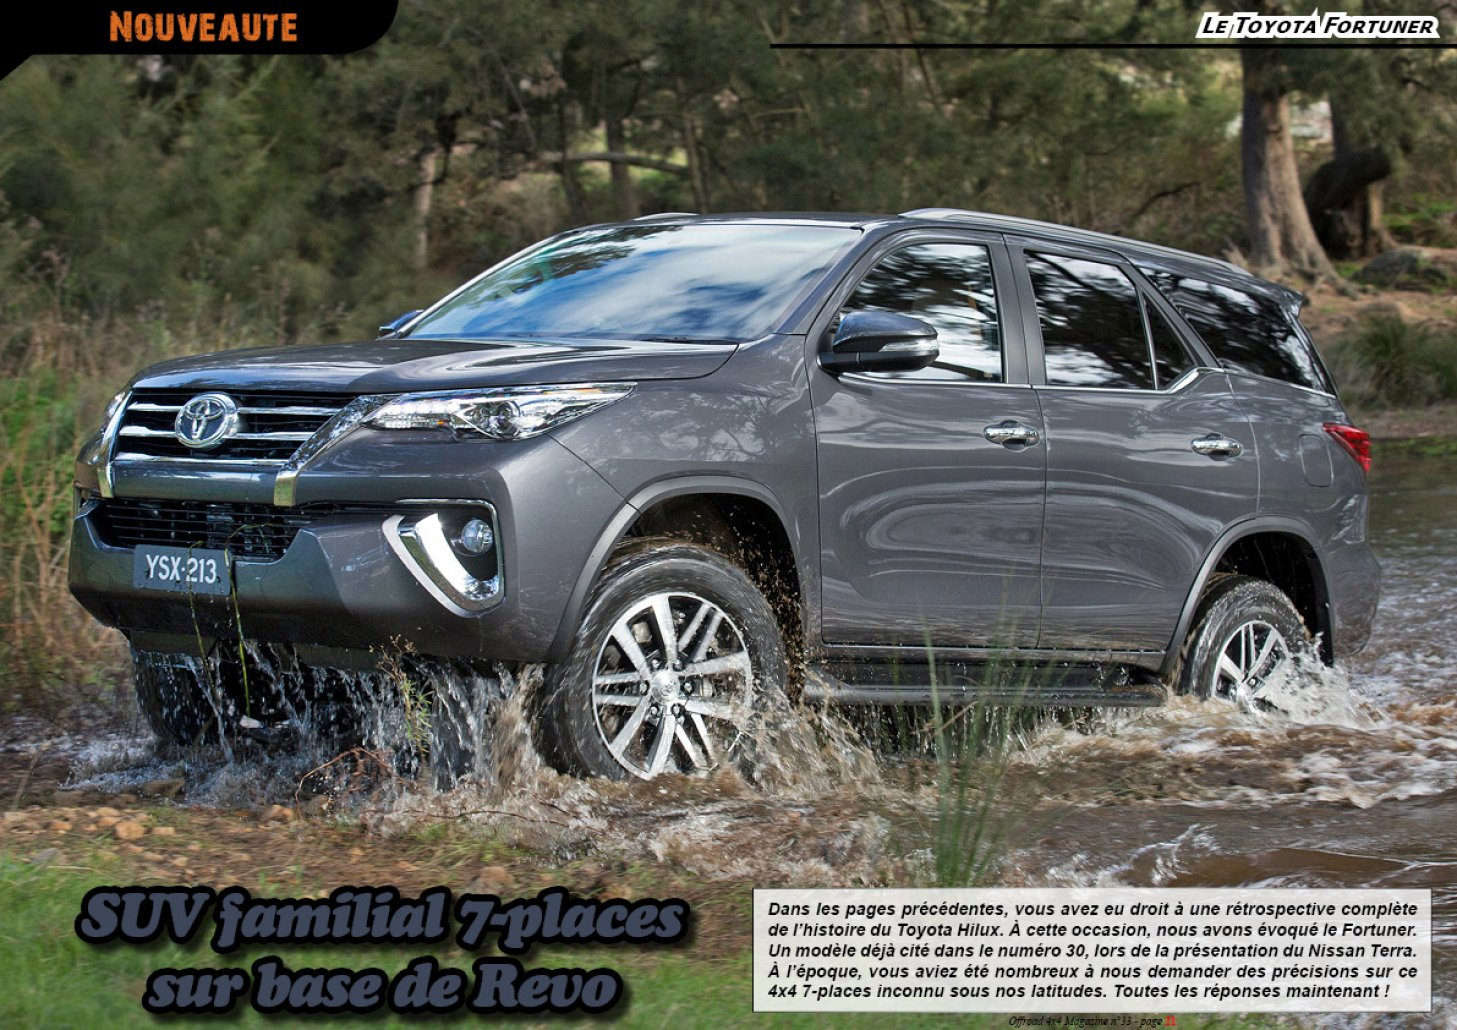 Le Toyota Fortuner